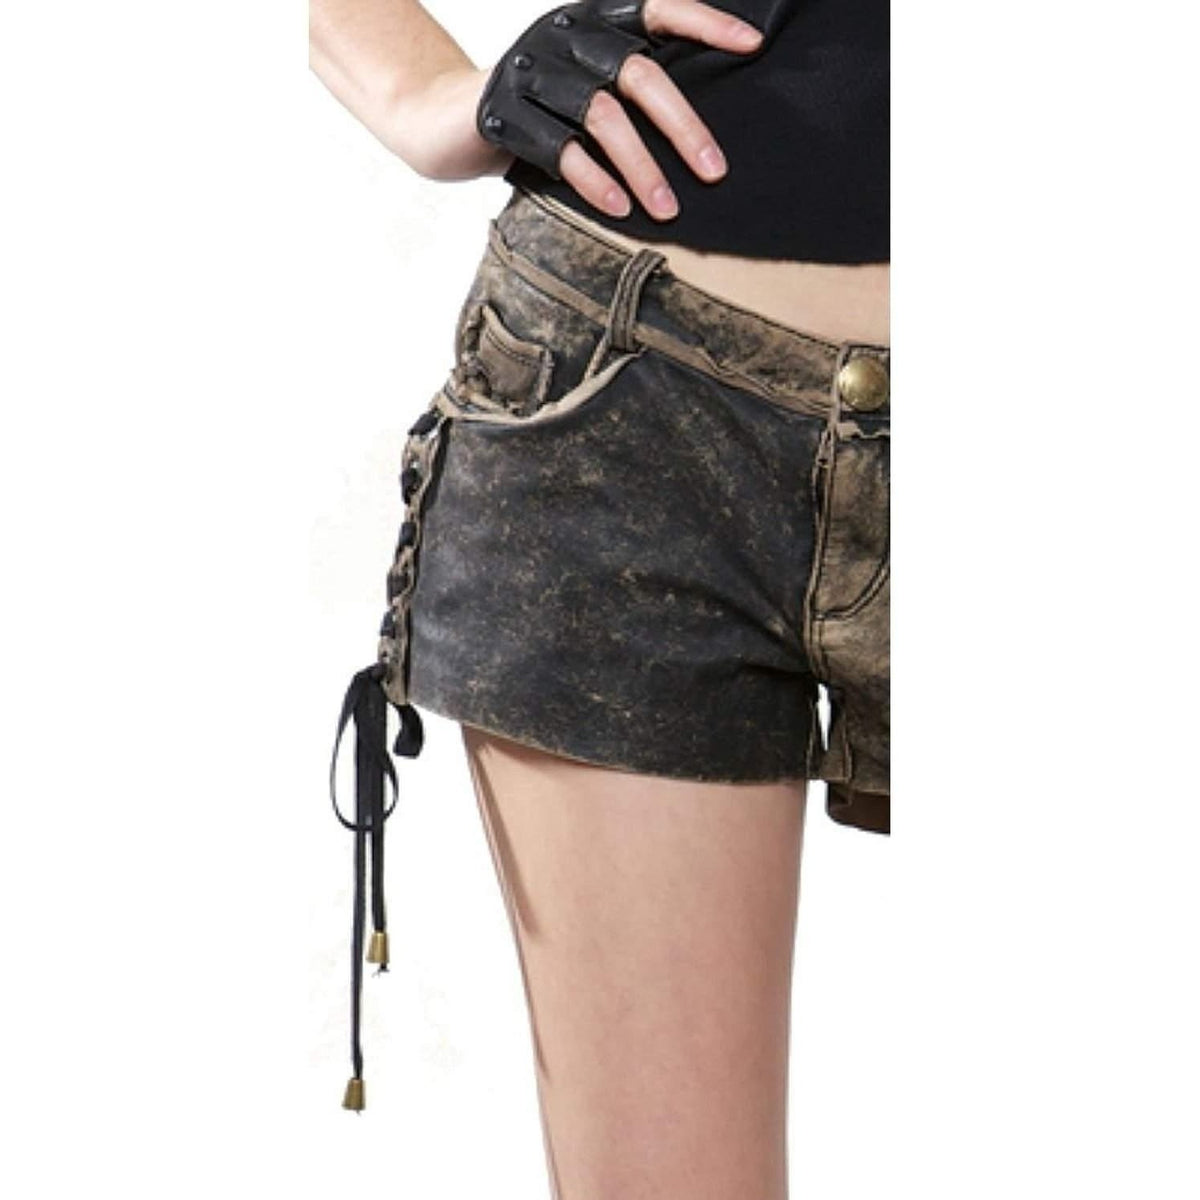 LIP SERVICE BIKER ROCKER GENUINE LEATHER SHORTS